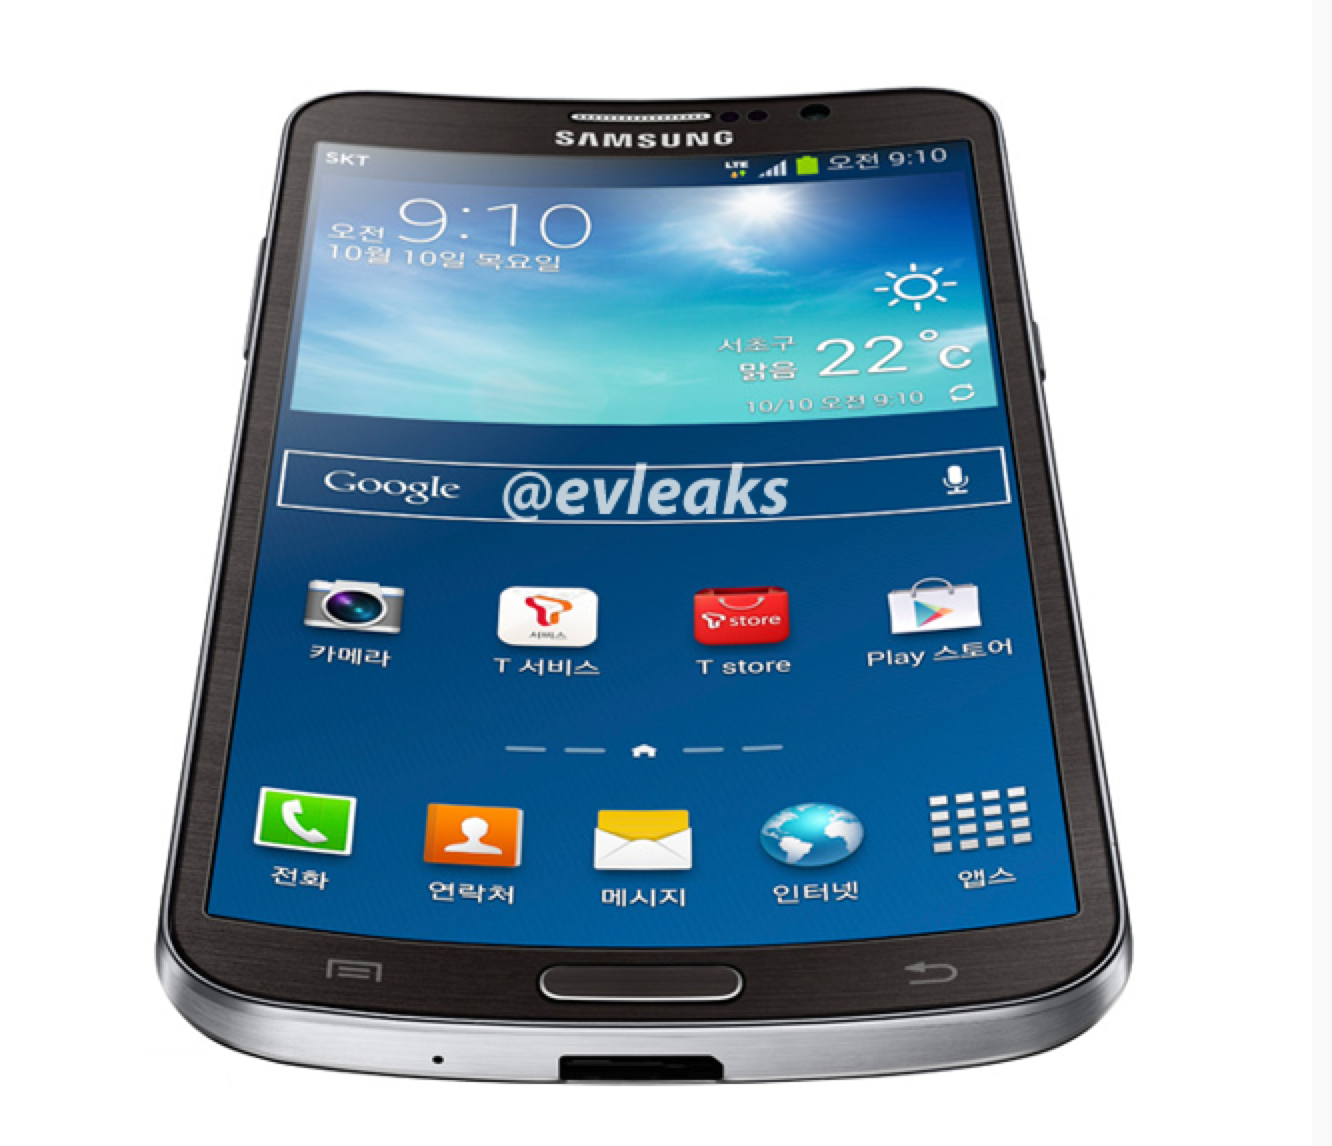 Samsung Curved Screen Smartphone Purported Picture Leaked.